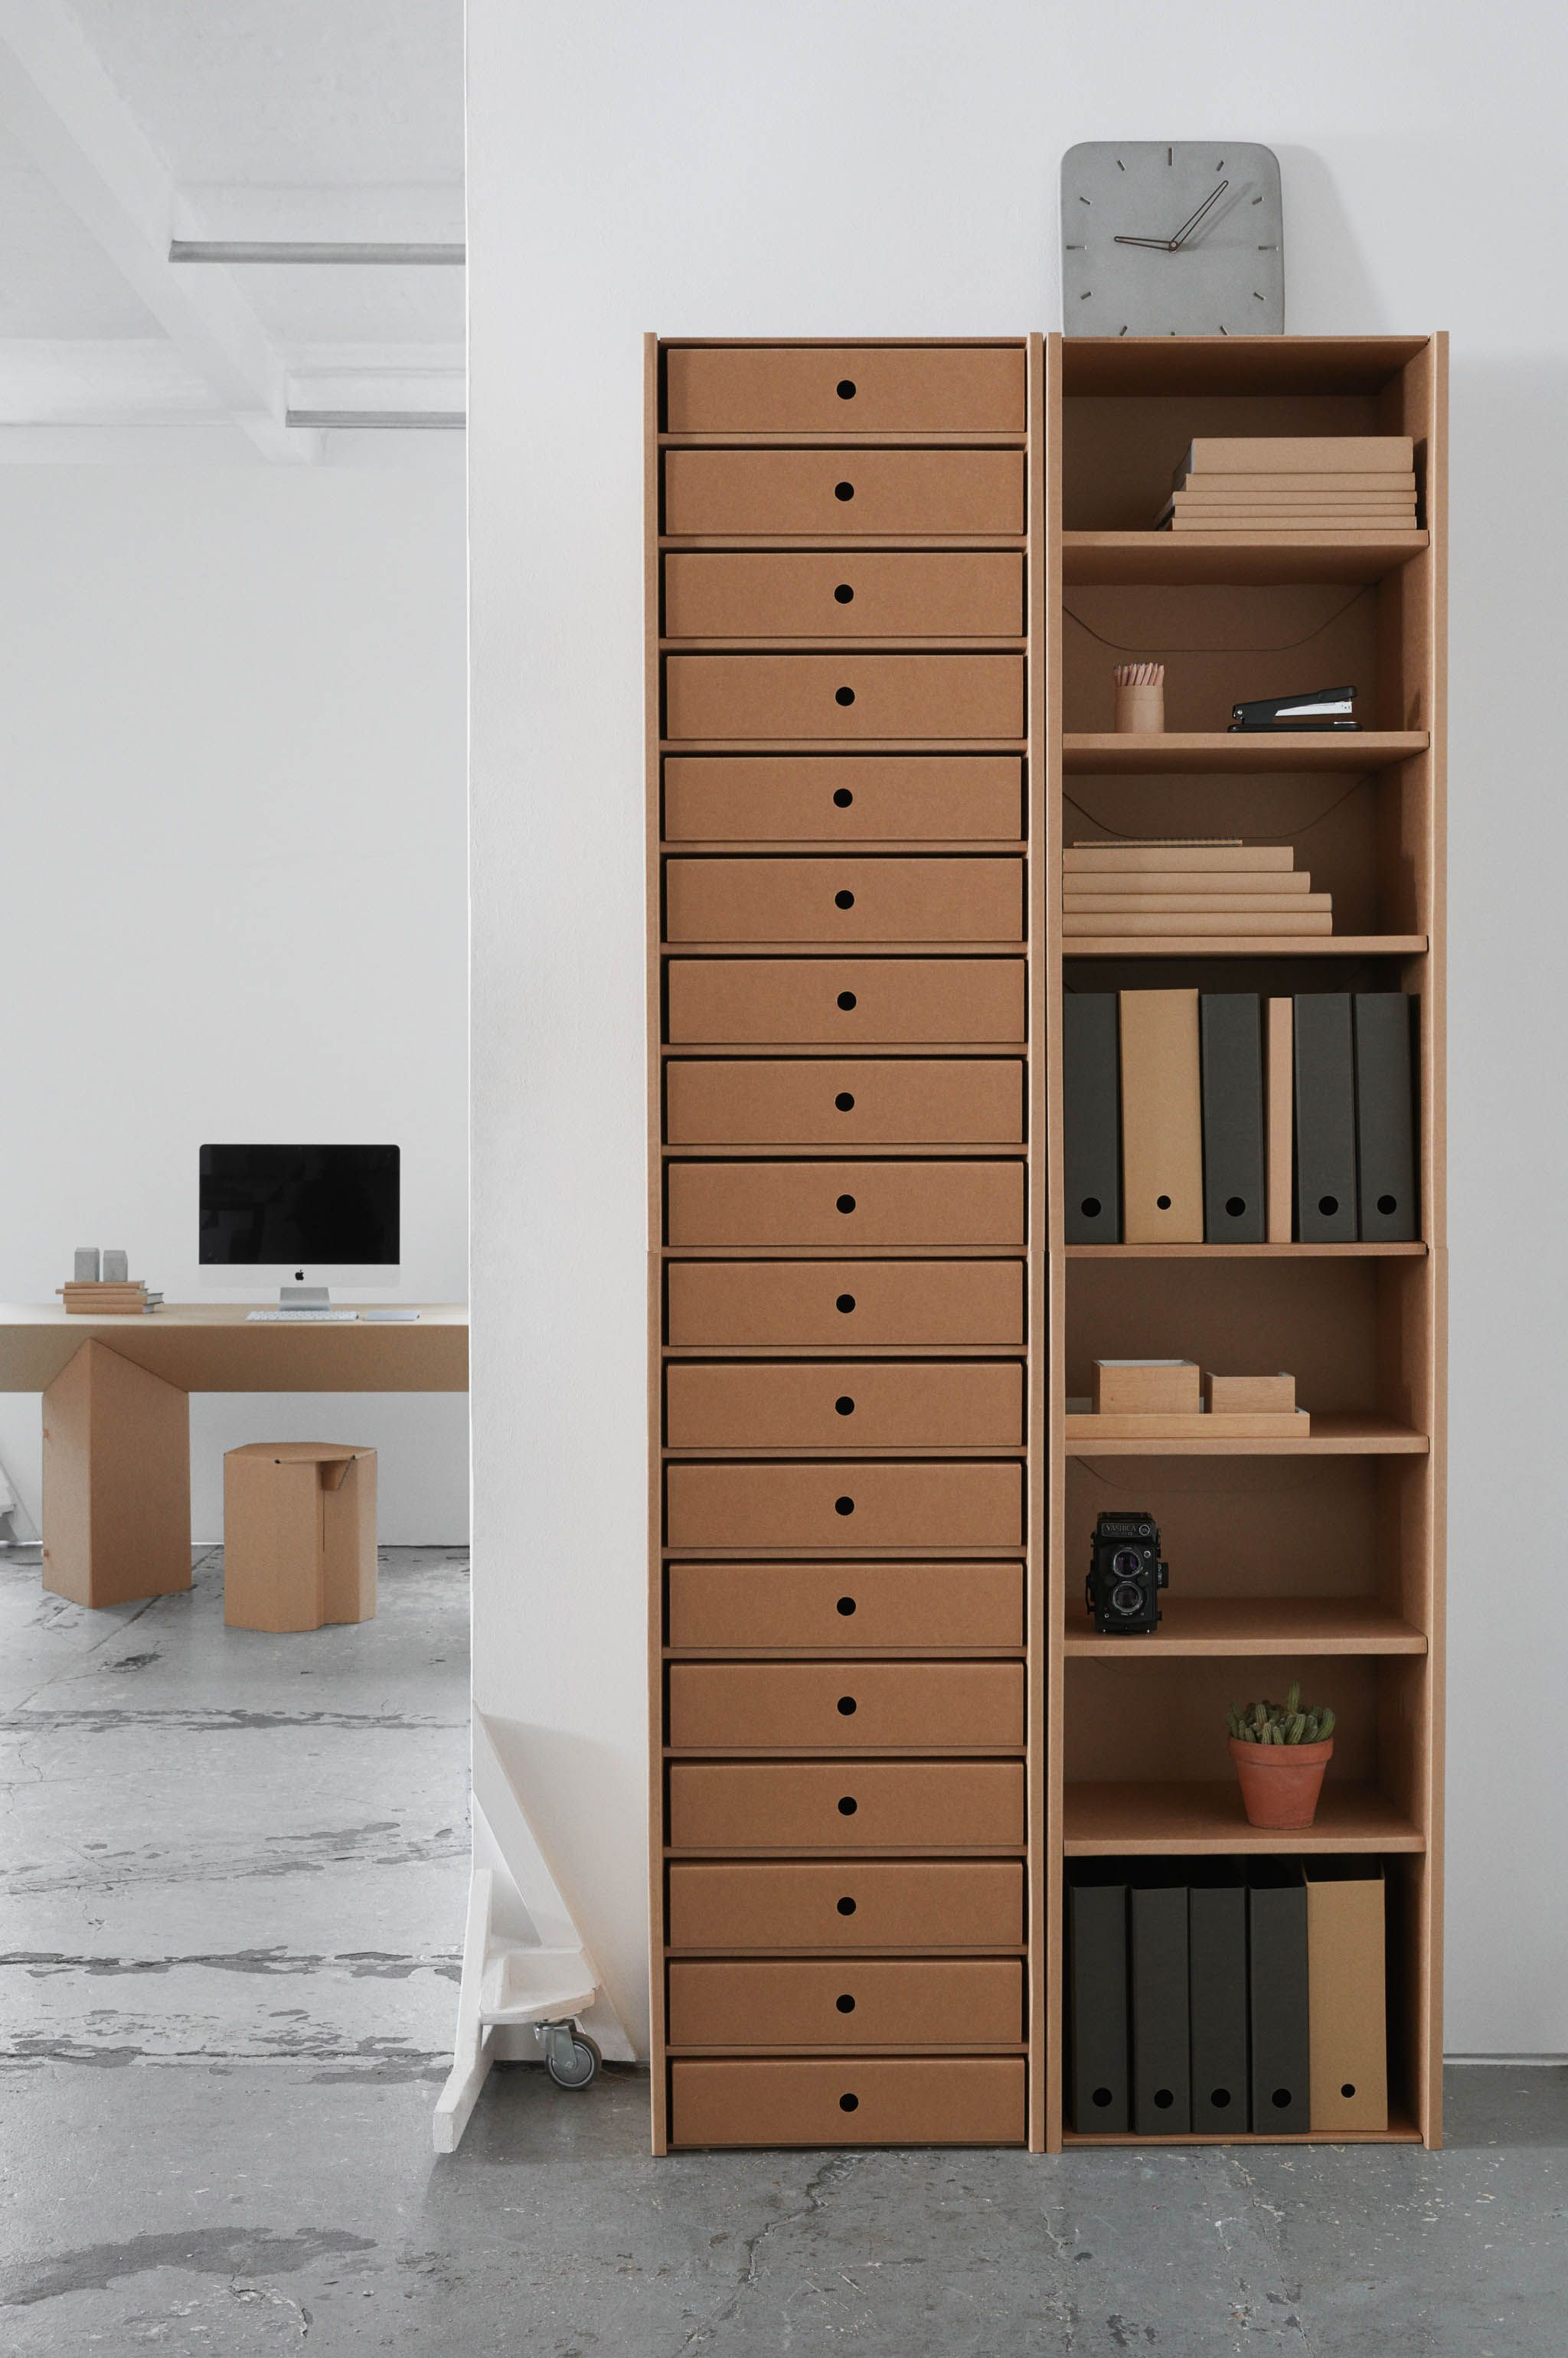 Möbel Aus Pappe Basteln Cardboard Furniture From Berlin For Your Office Shelves